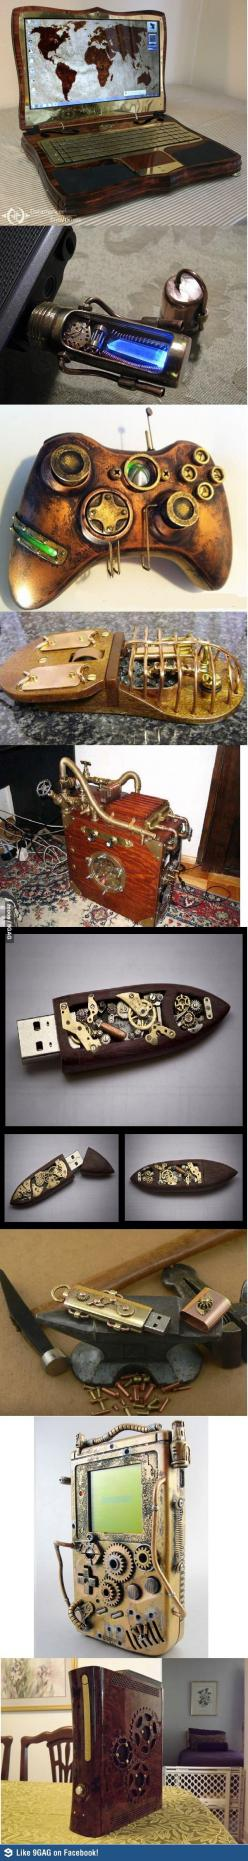 A whole slew of steampunk gadgets. | Follow here http://pinterest.com/cakespinyoface/geekery/ for even more Geekery-- art, tech and more!: Steampunk Electronics, Steampunk Stuff, Steampunk Technology, Steampunk Style, Steampunk Victorian, Steampunk Gadget